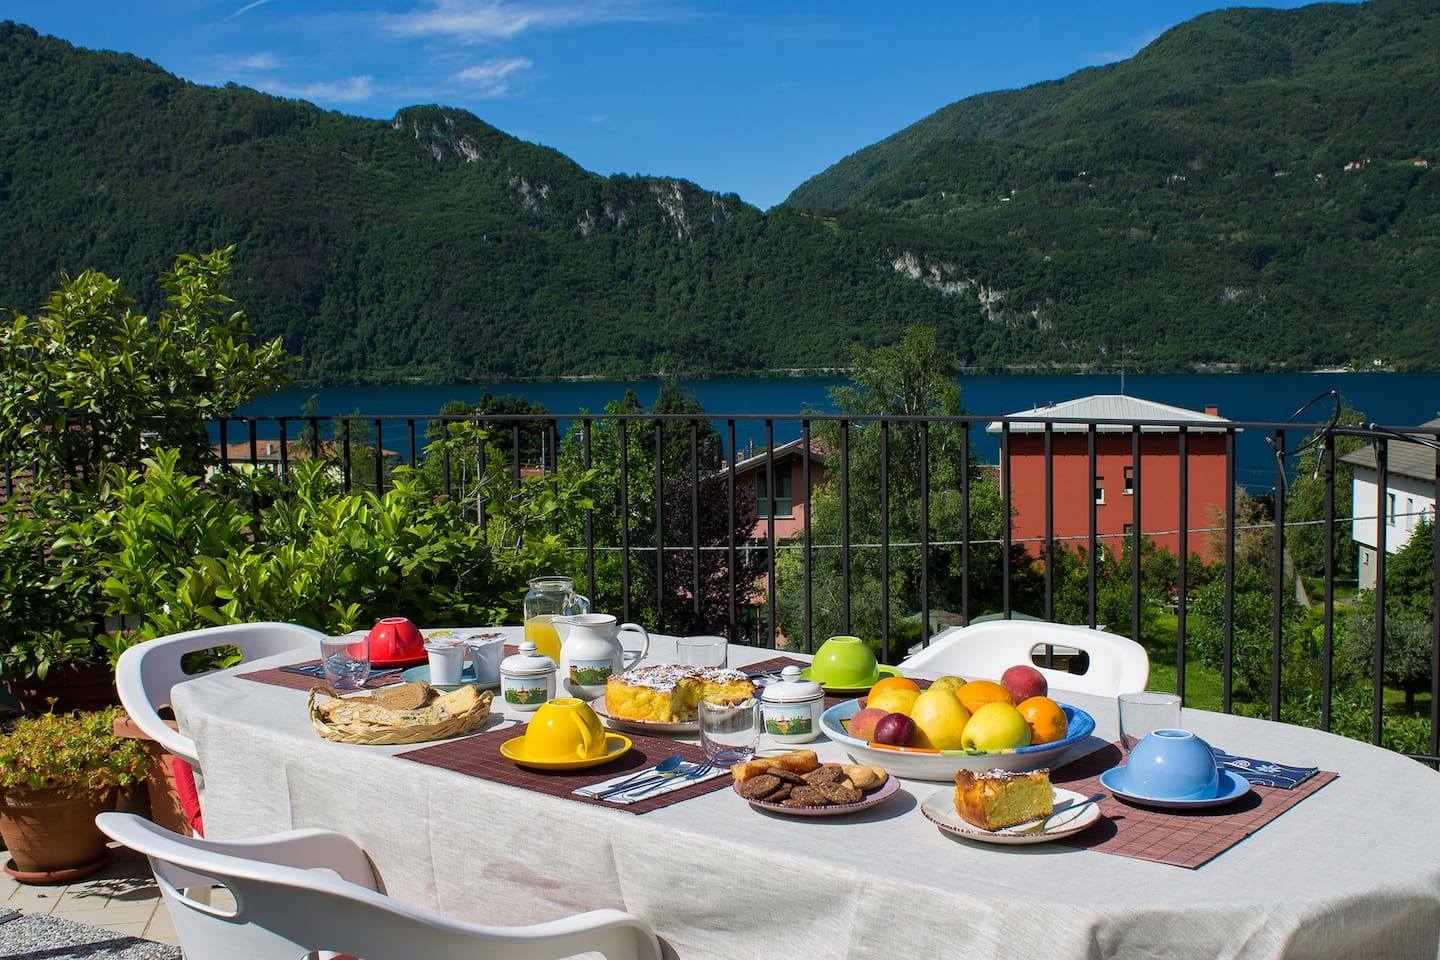 The Breakfast on the Terrace